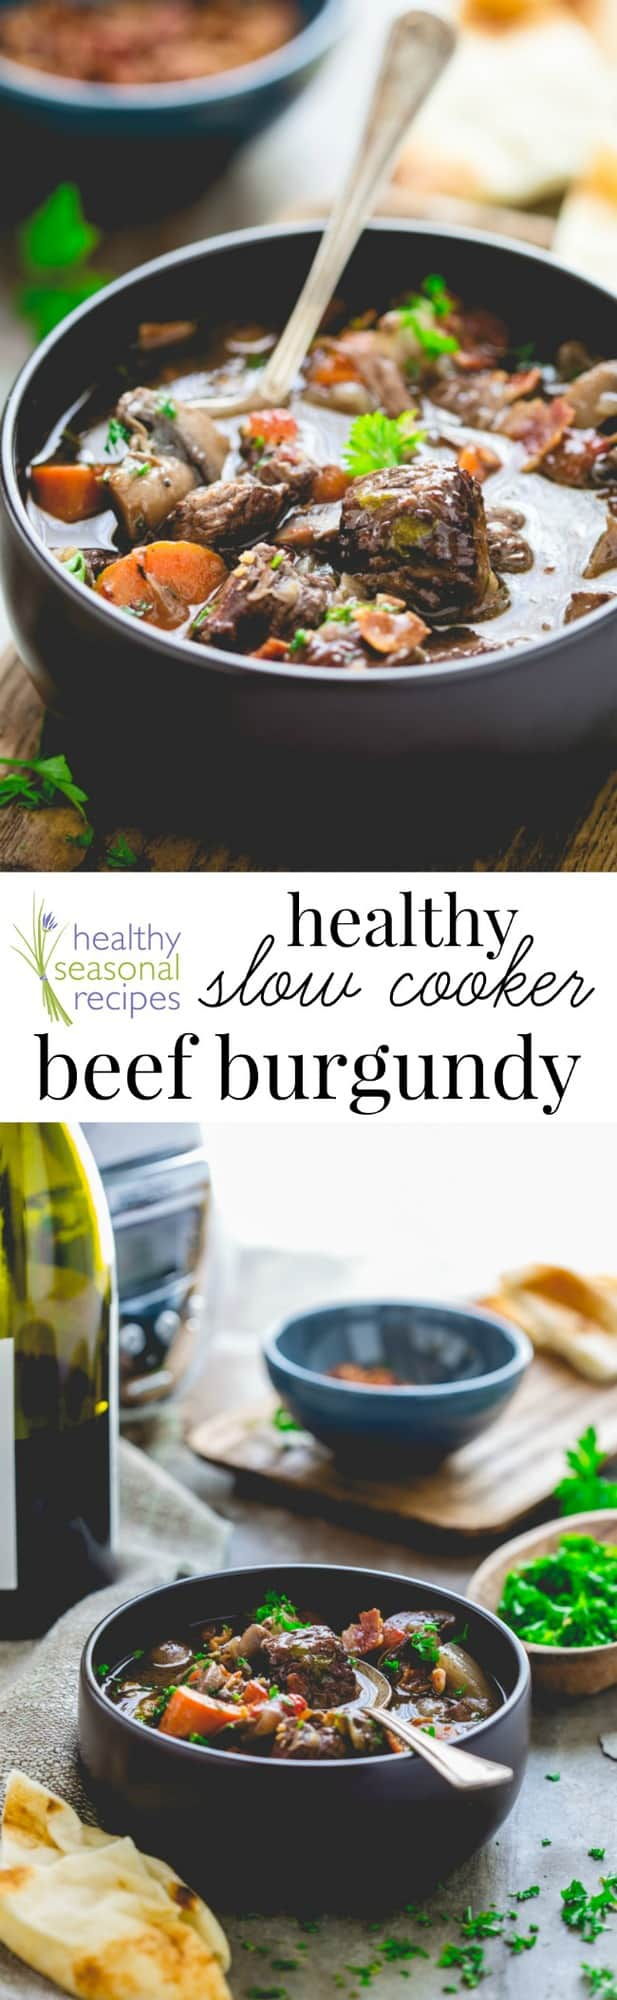 This healthy Slow Cooker Beef Burgundy features braised beef and vegetables in a red wine sauce with a bit of bacon and maple syrup added for good measure! #french #frenchfood #frenchrecipe #slowcooker #crockpot #beef #beefburgundy #beefstew #redwine #stew #winterrecipe #comfortfood #healthyrecipe #healthy